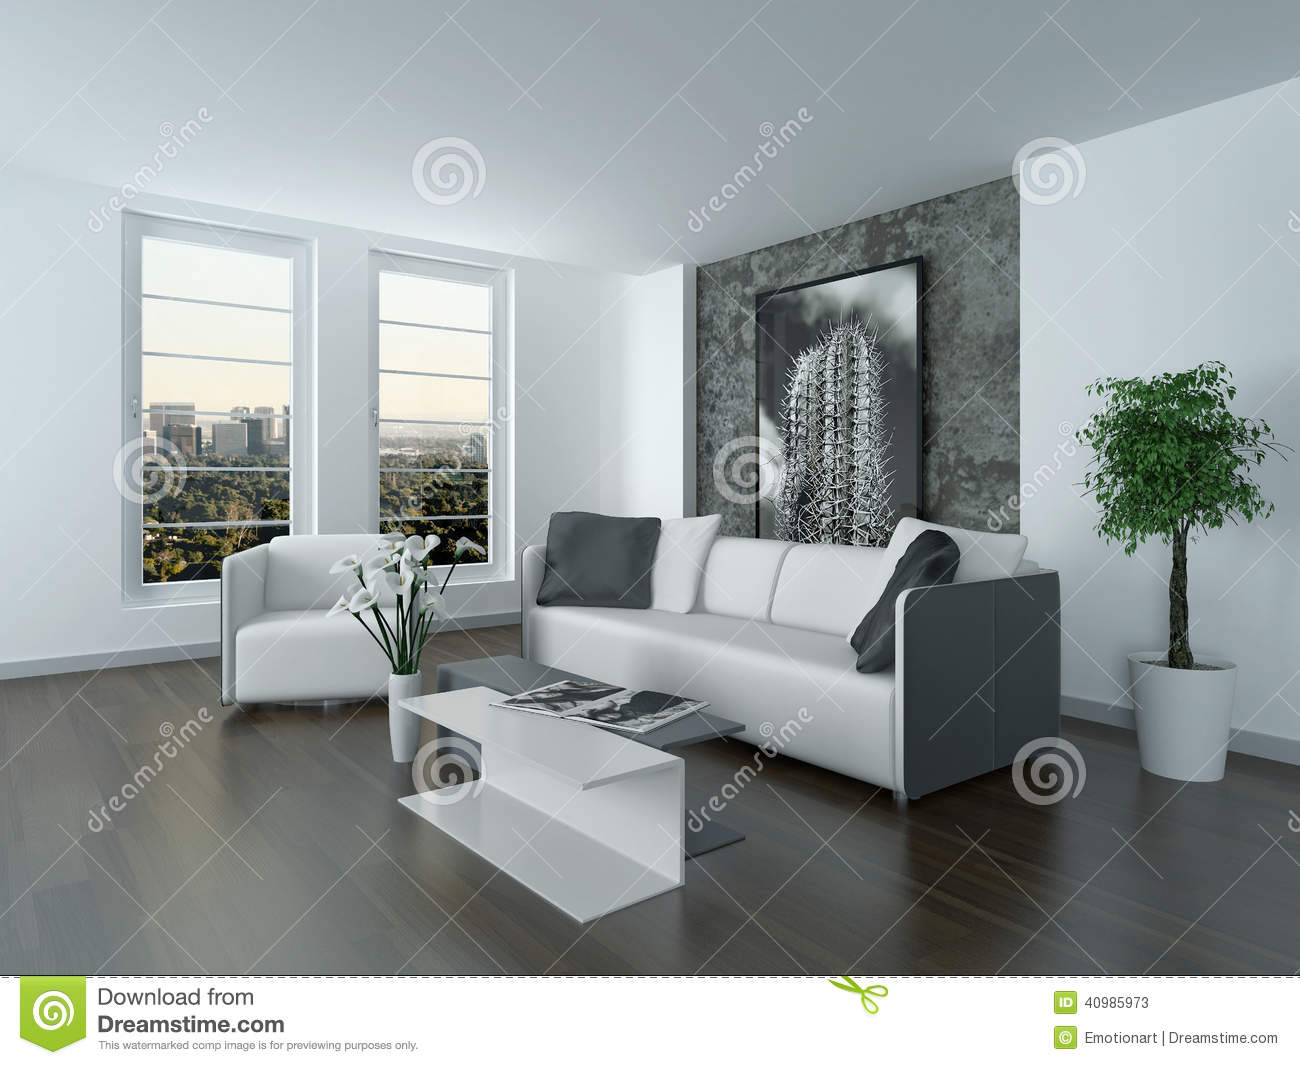 Modern grey and white sitting room interior stock illustration image 40985973 for Deco woonkamer moderne woonkamer